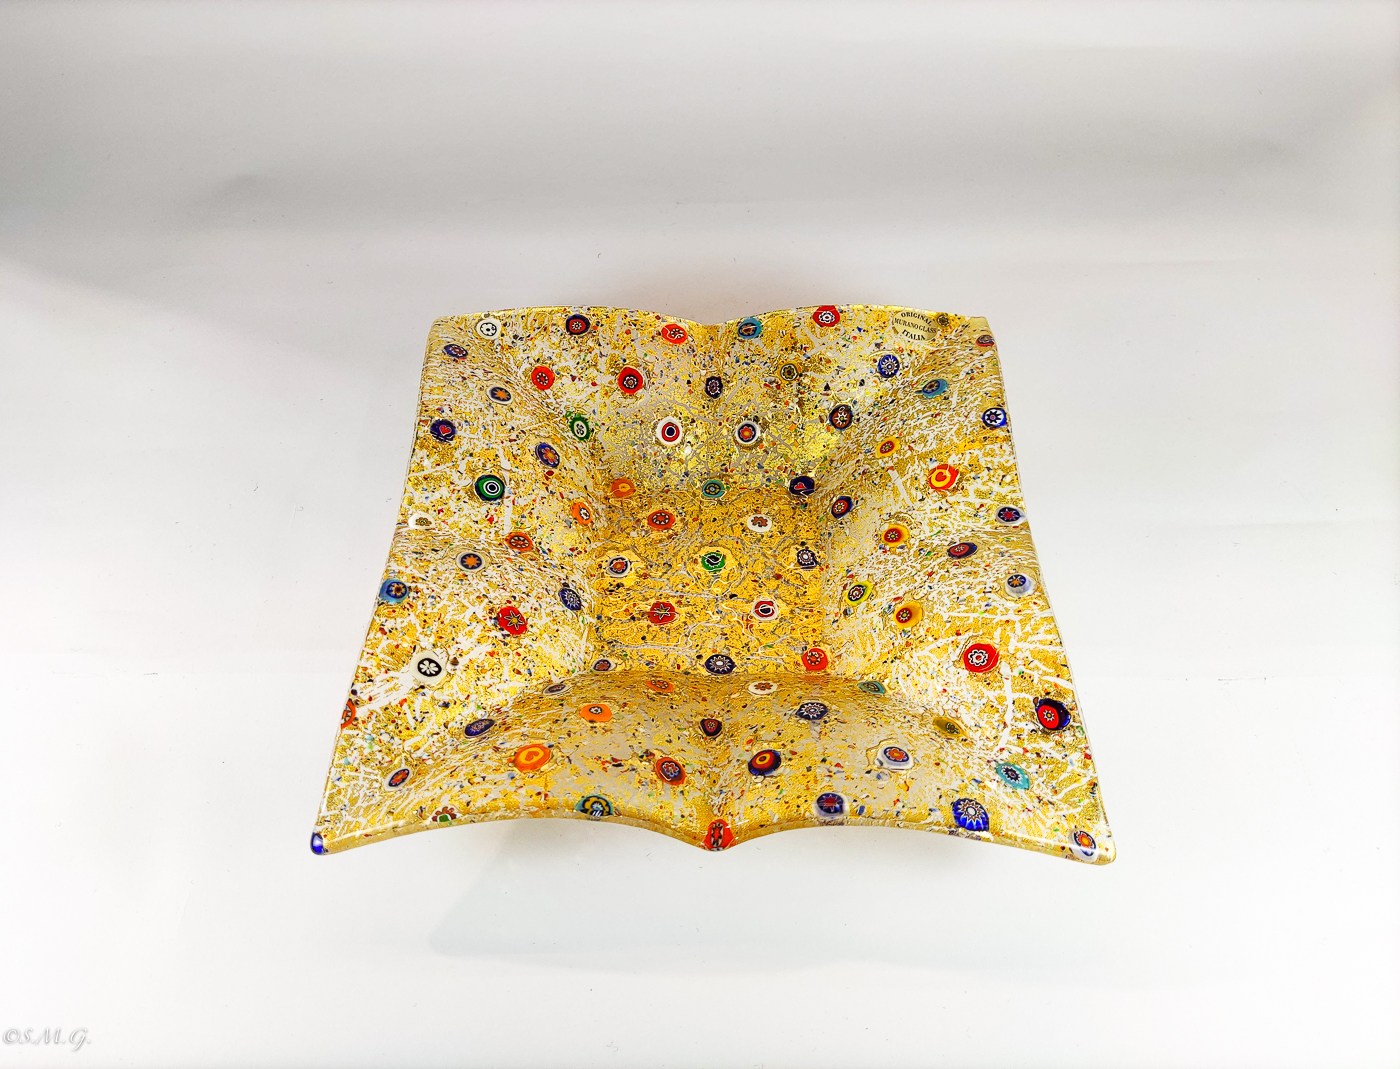 Square Murano glass plate with 24k gold and murrina